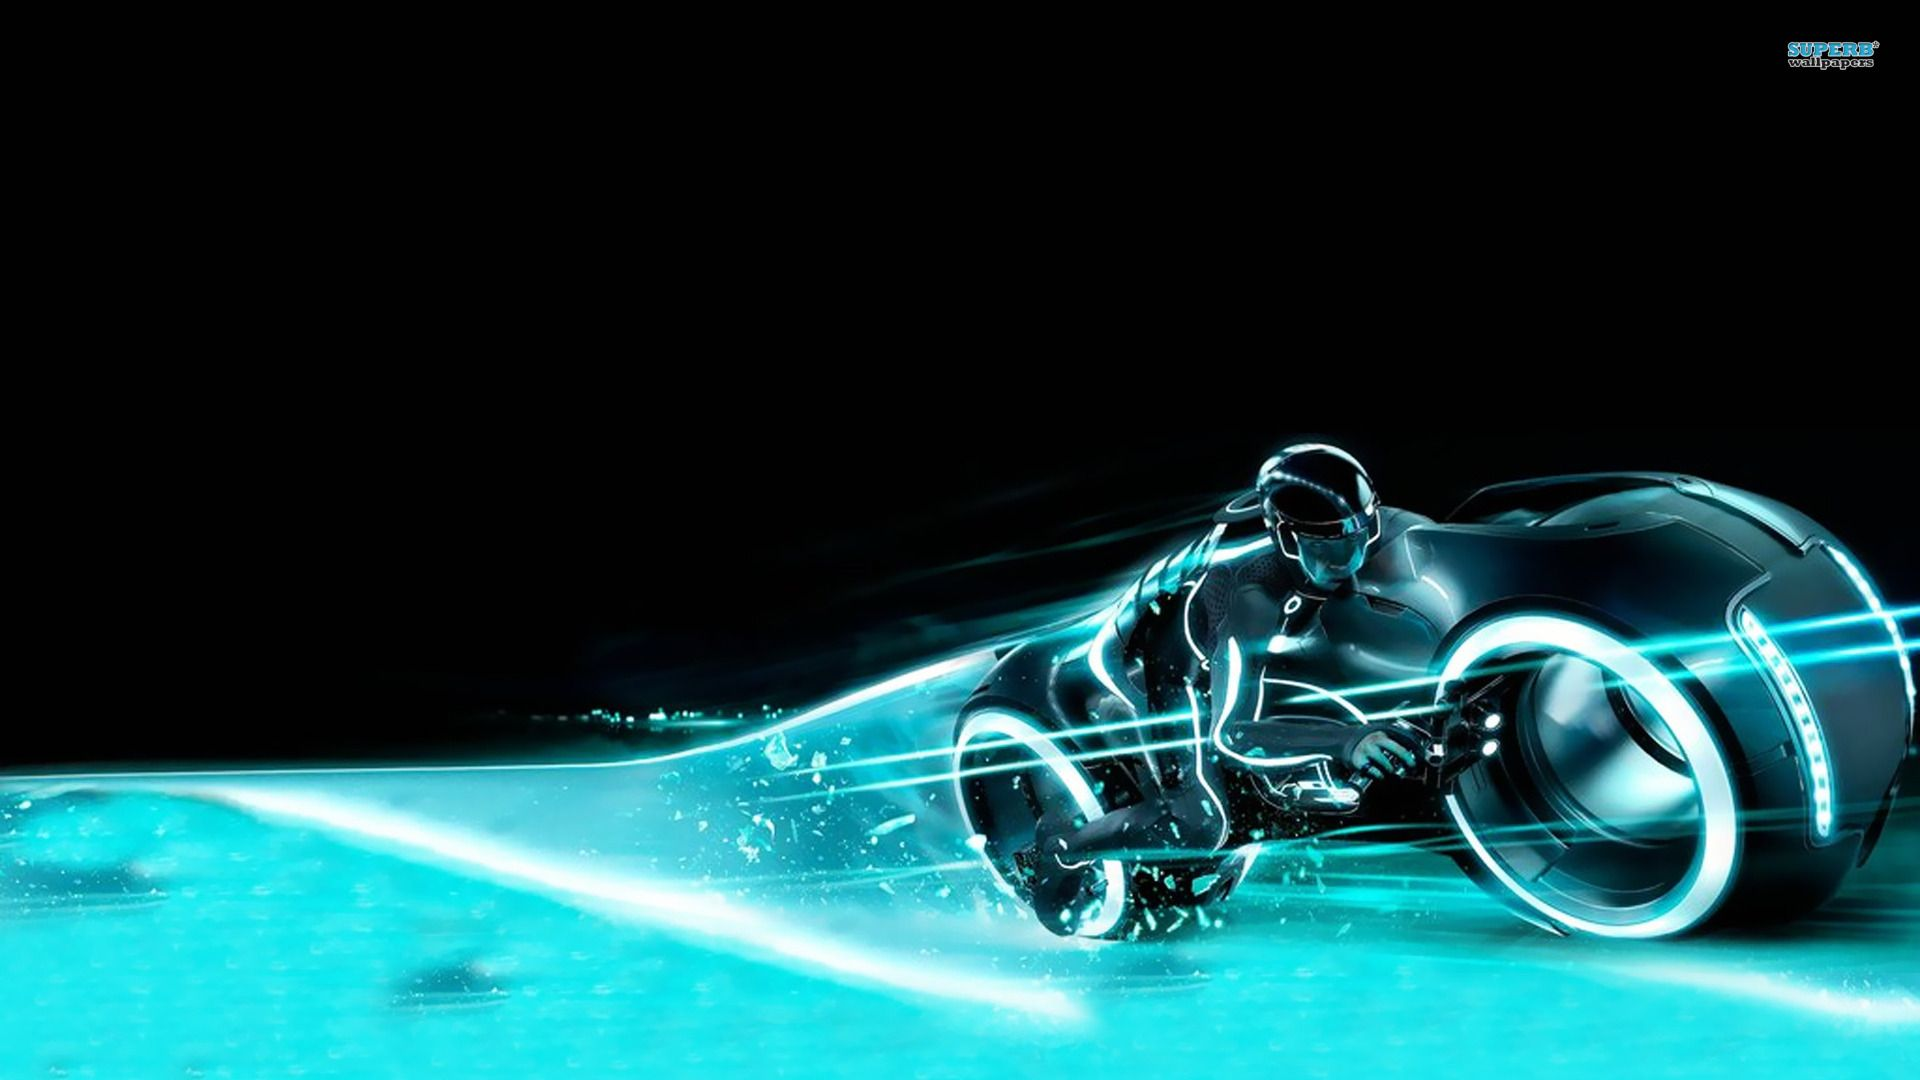 2010 tron evolution wallpapers - photo #14